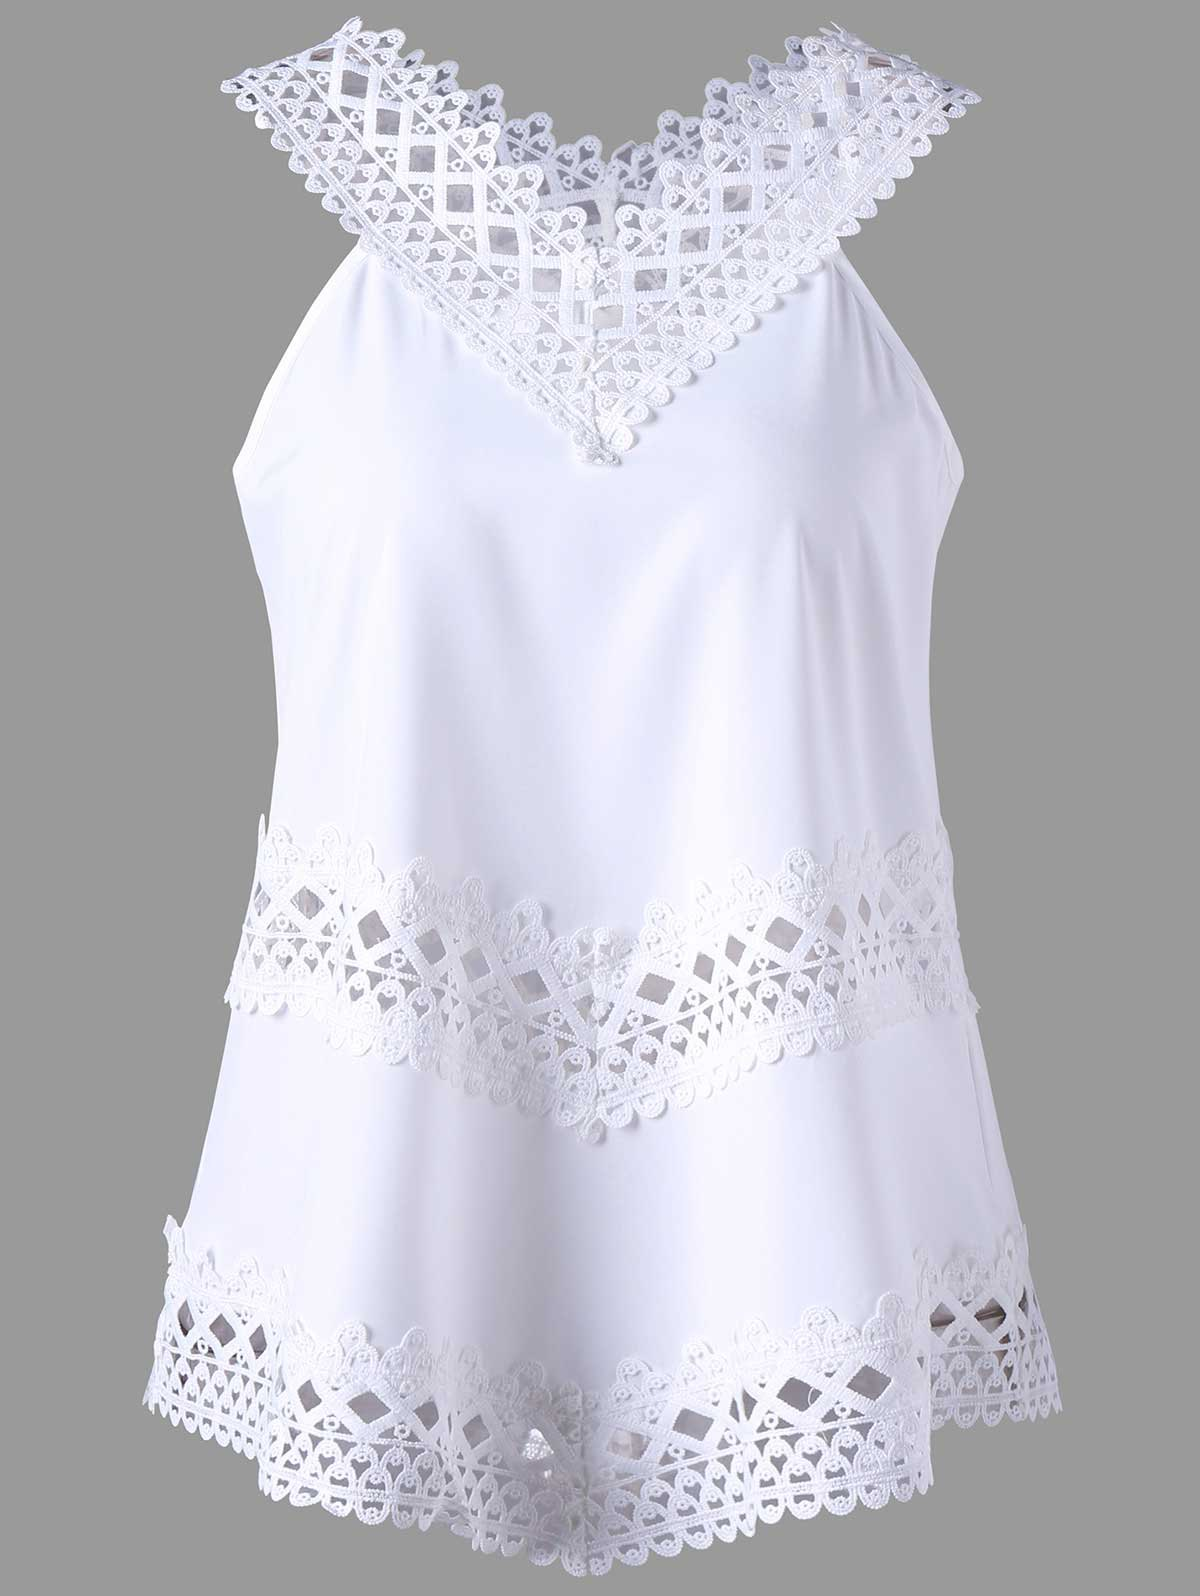 Crochet Panel V Neck Tank TopWOMEN<br><br>Size: XL; Color: WHITE; Material: Polyester; Shirt Length: Regular; Pattern Type: Geometric; Style: Casual; Weight: 0.2000kg; Package Contents: 1 x Top;